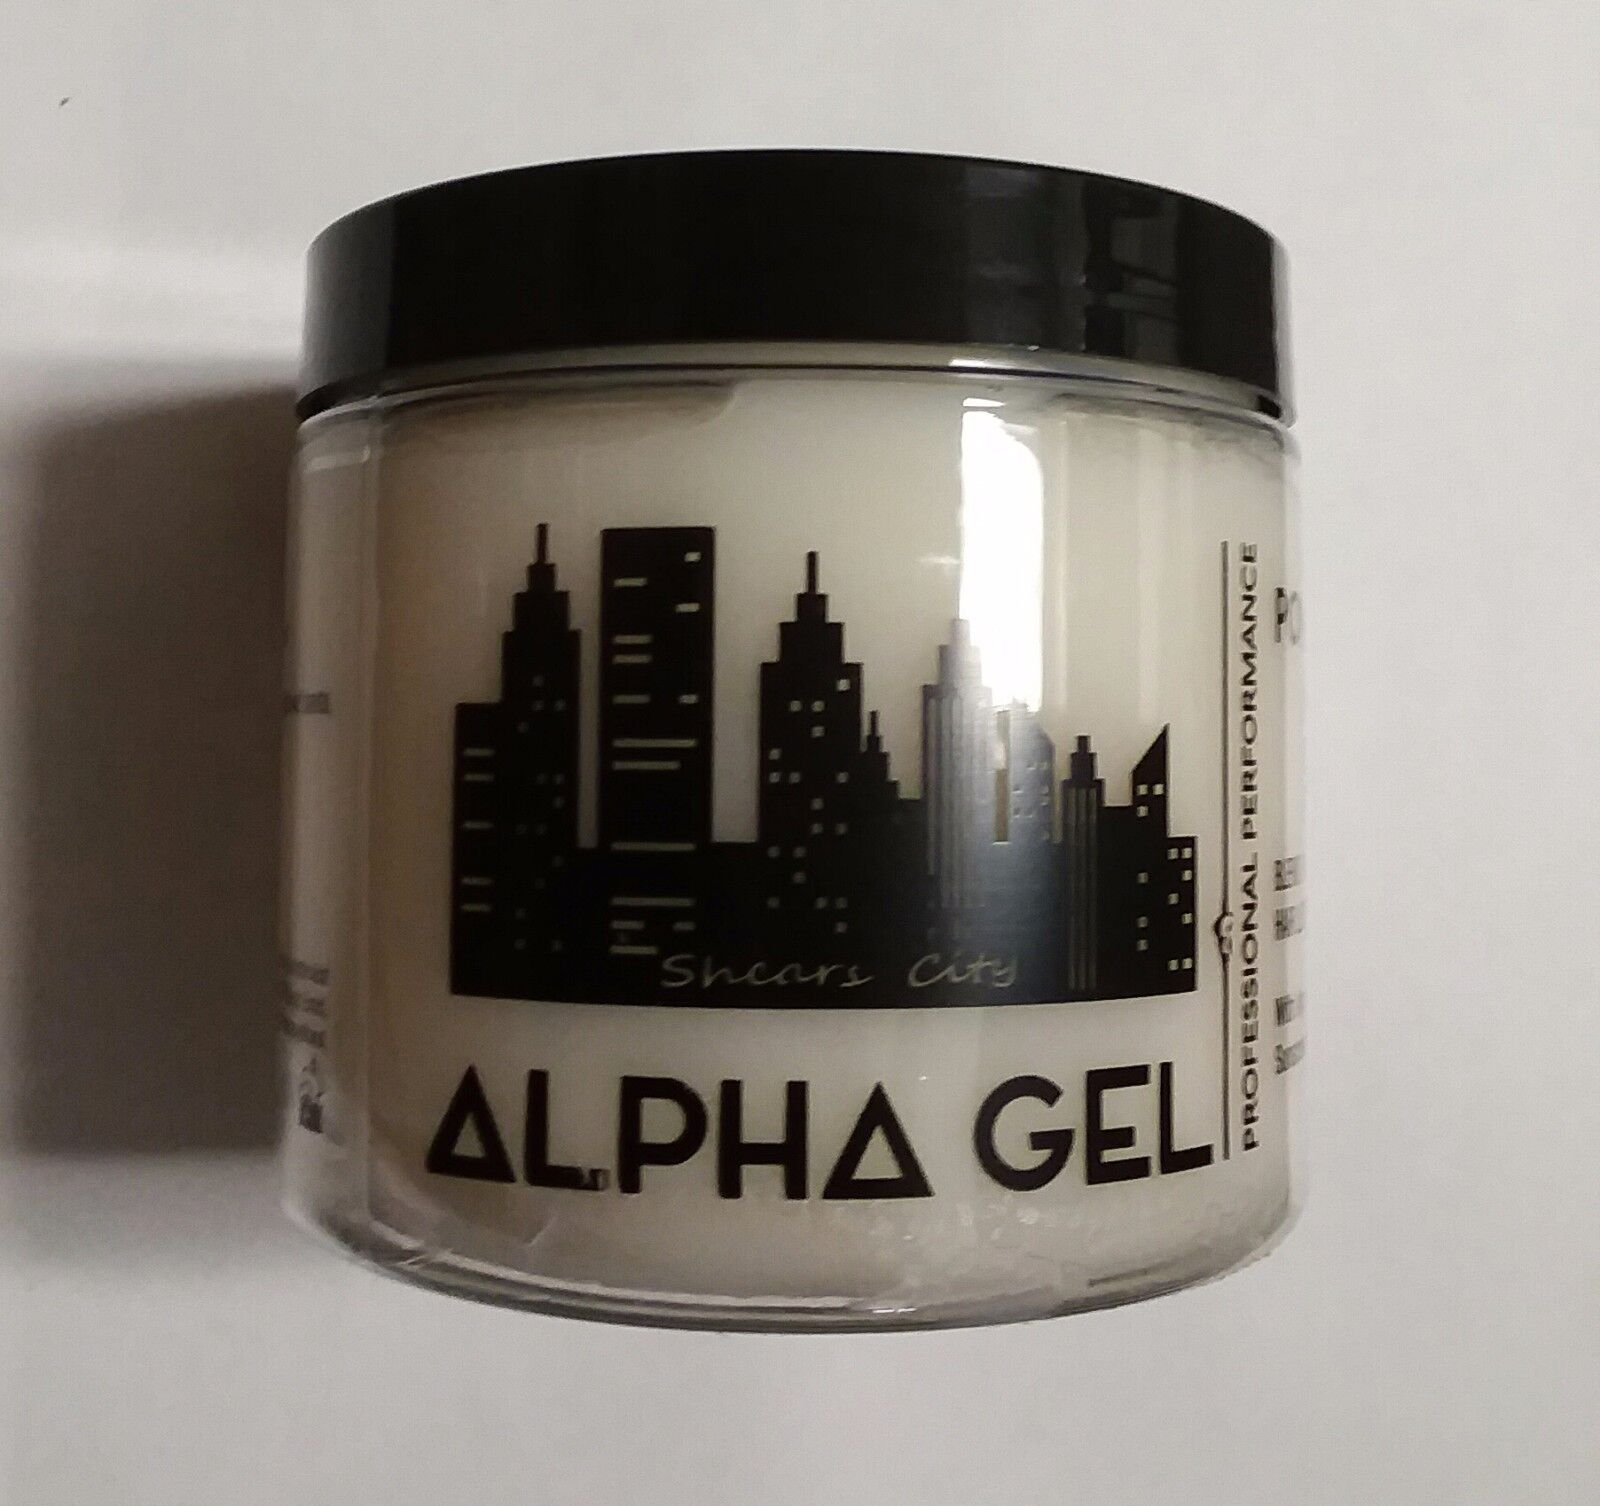 Alpha Gel Powerful Hair Gel, Water Based, No Flaking No Alco